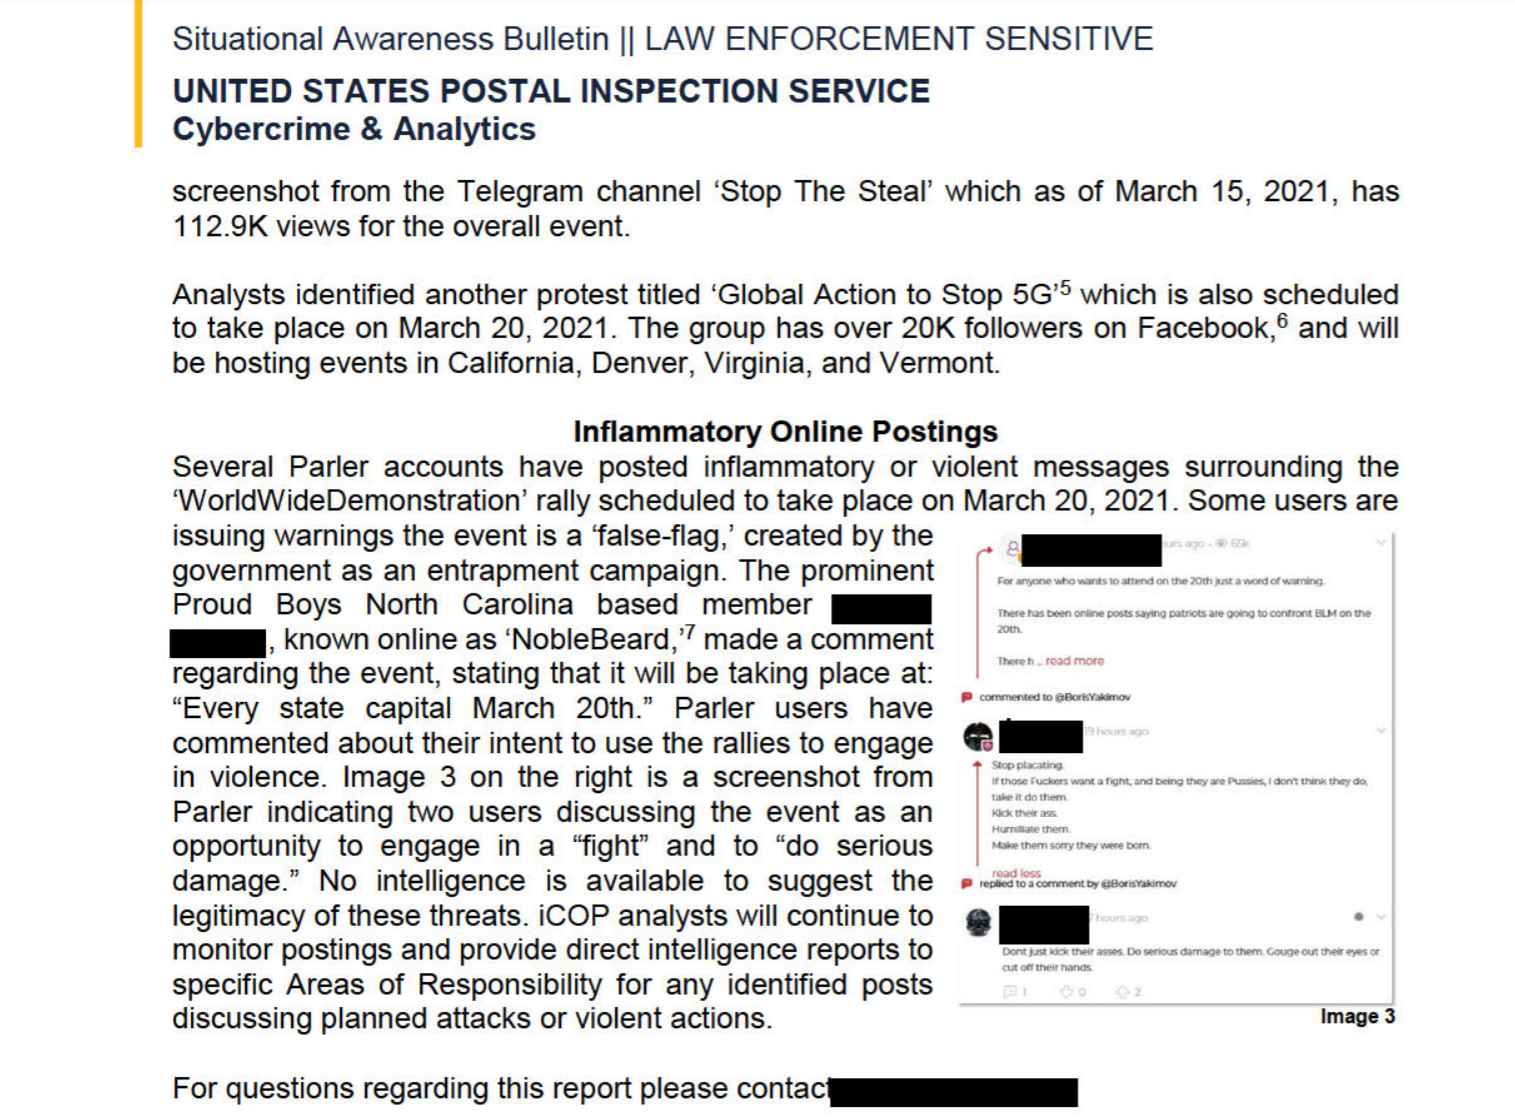 Page 2 of 2 of the United States Postal Intelligence Service's Internet Covert Operations Program Situational Awareness Bulletin claiming right-wing violence was being planned for the March 20 International Day of Protests.